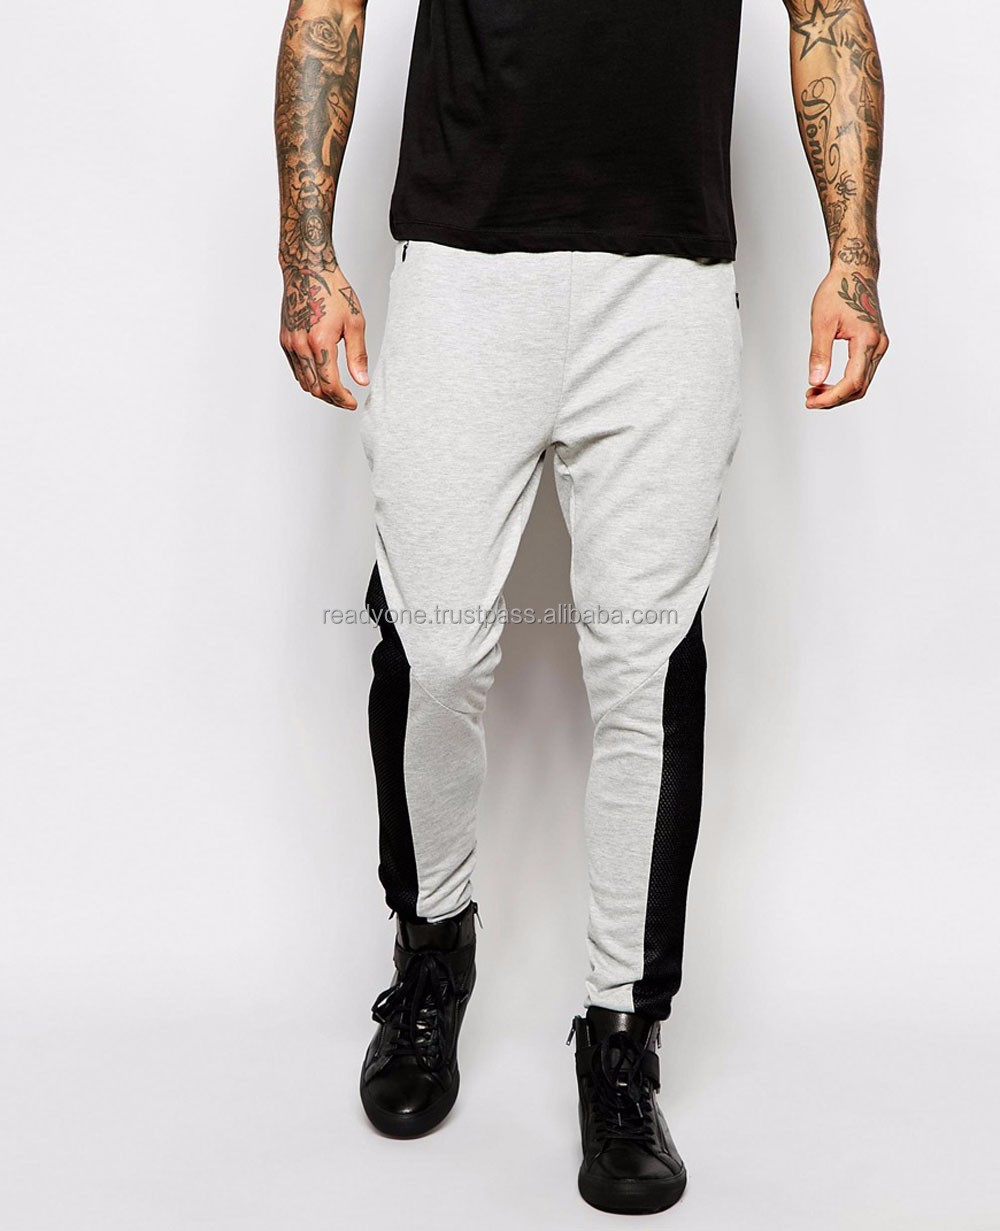 Fashionable Cargo Pants - New style 2016 fashion Casual men pants Dance hip hop sports harem cargo